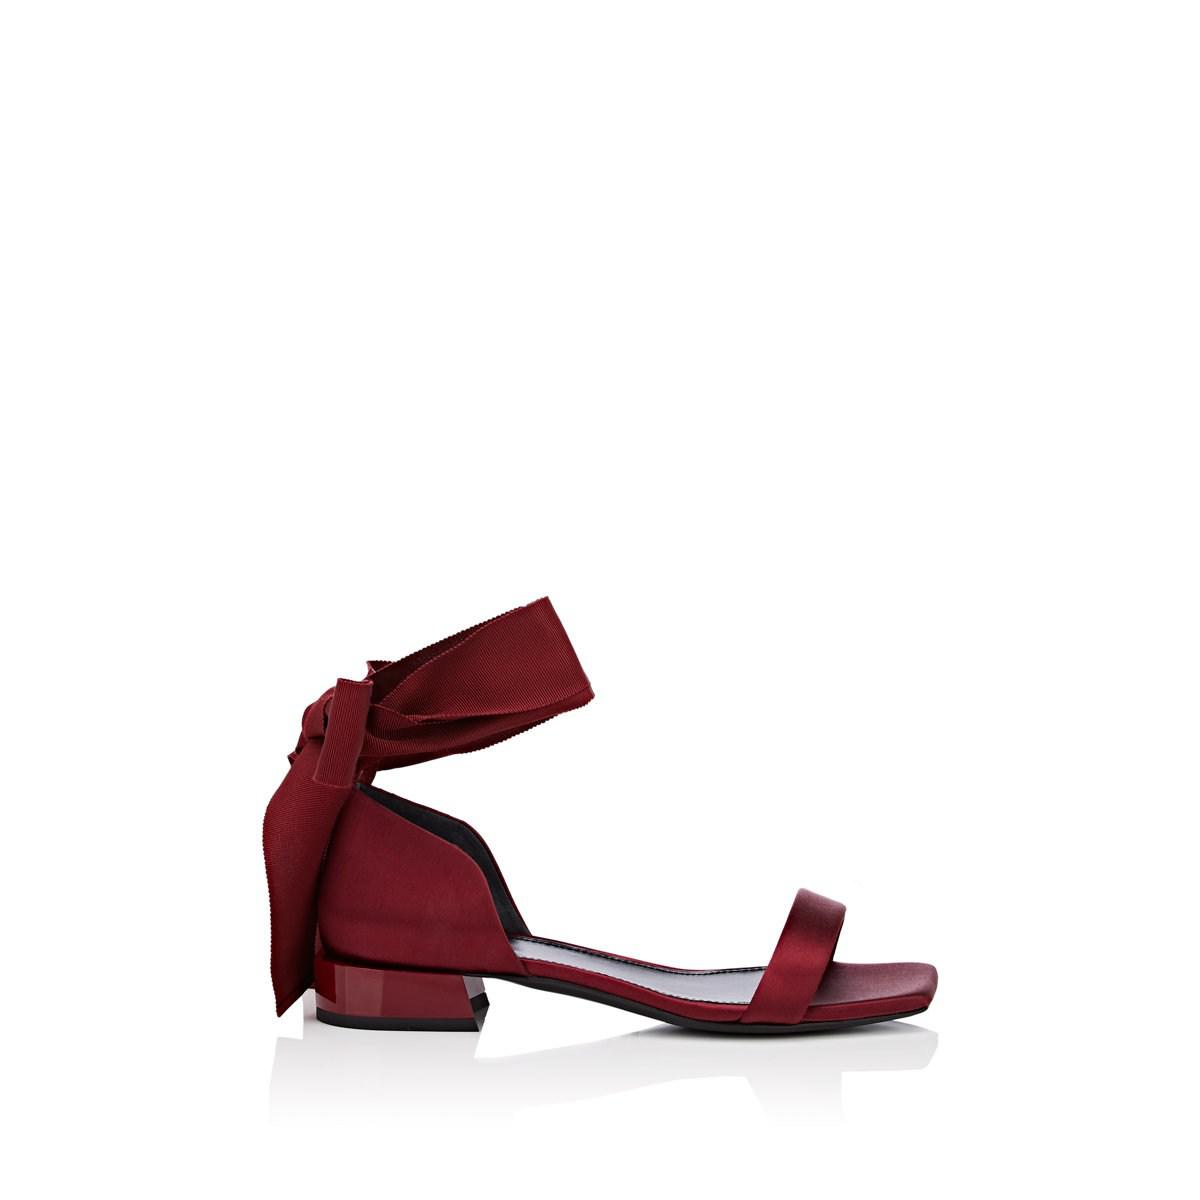 fc449bd7d80c Lanvin. Women s Red Satin Ankle-tie Sandals. £627 From Barneys New York ...